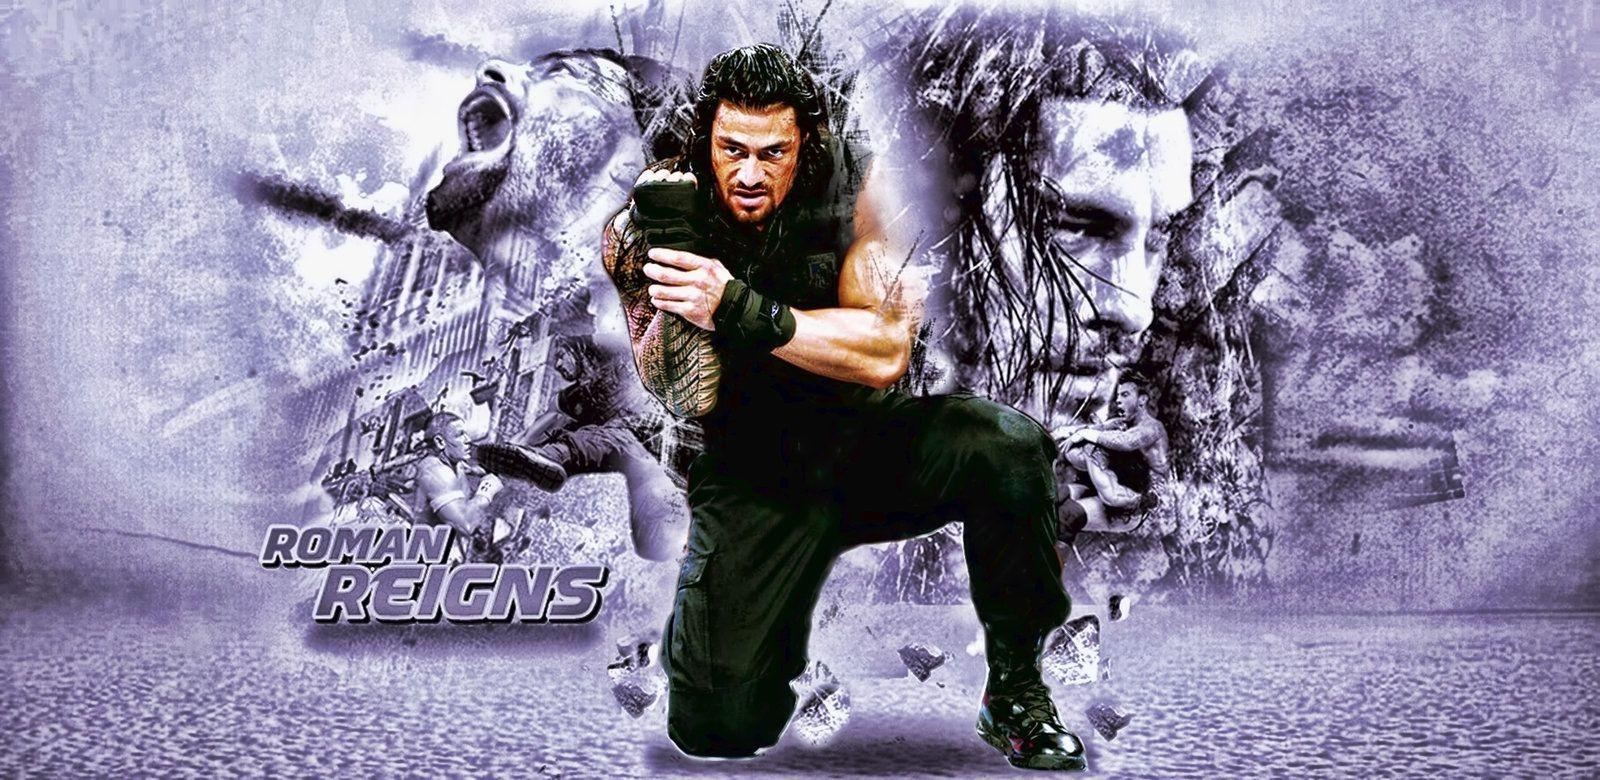 roman reigns wallpapers - wallpaper cave